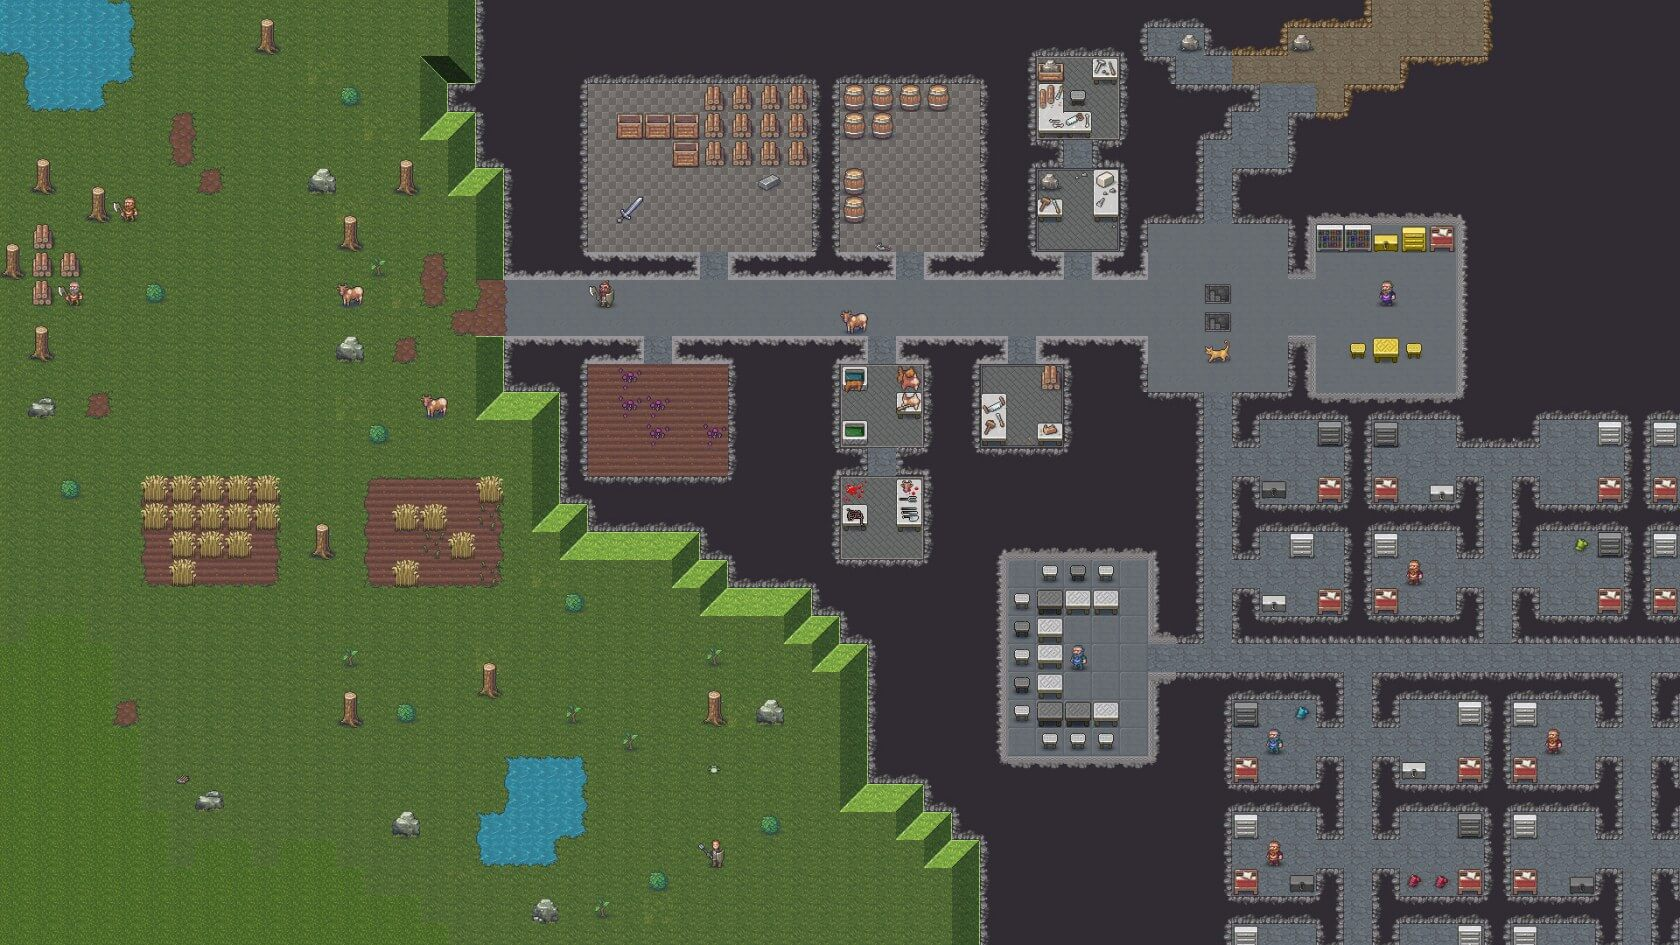 Dwarf Fortress will re-launch on Steam with real graphics, better